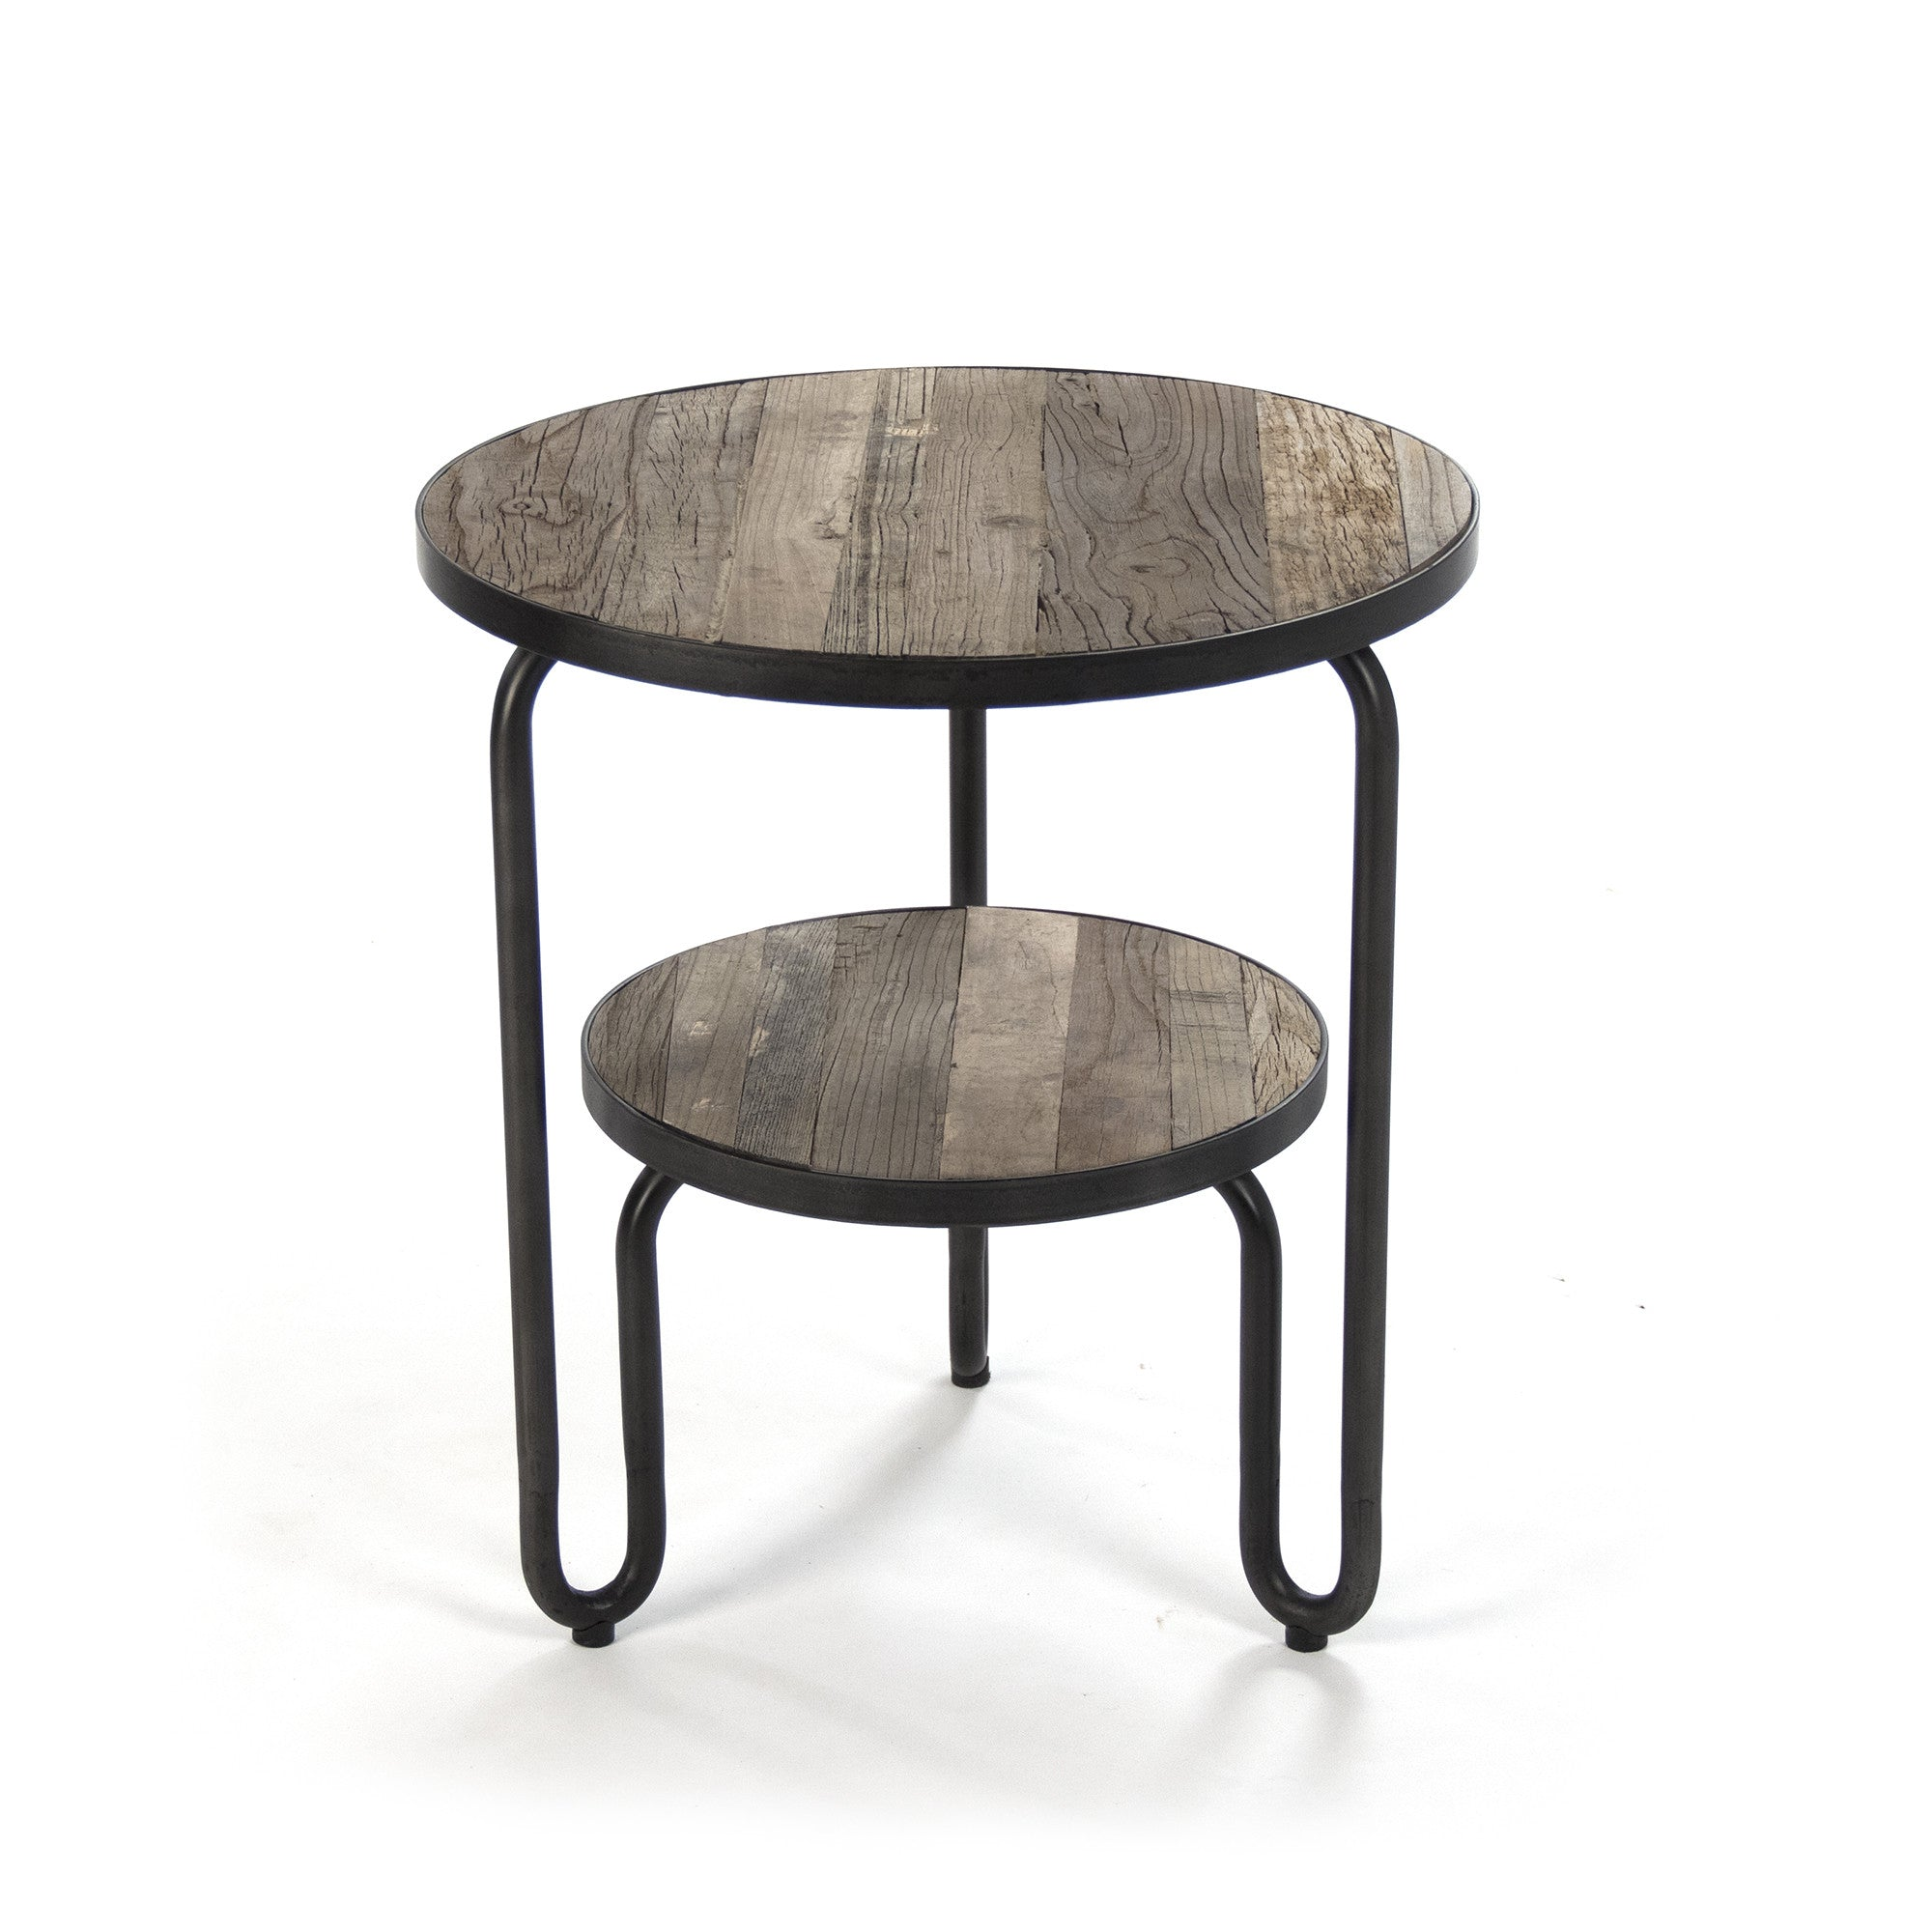 Admirable Alberta Round Side Table By Zentique Machost Co Dining Chair Design Ideas Machostcouk